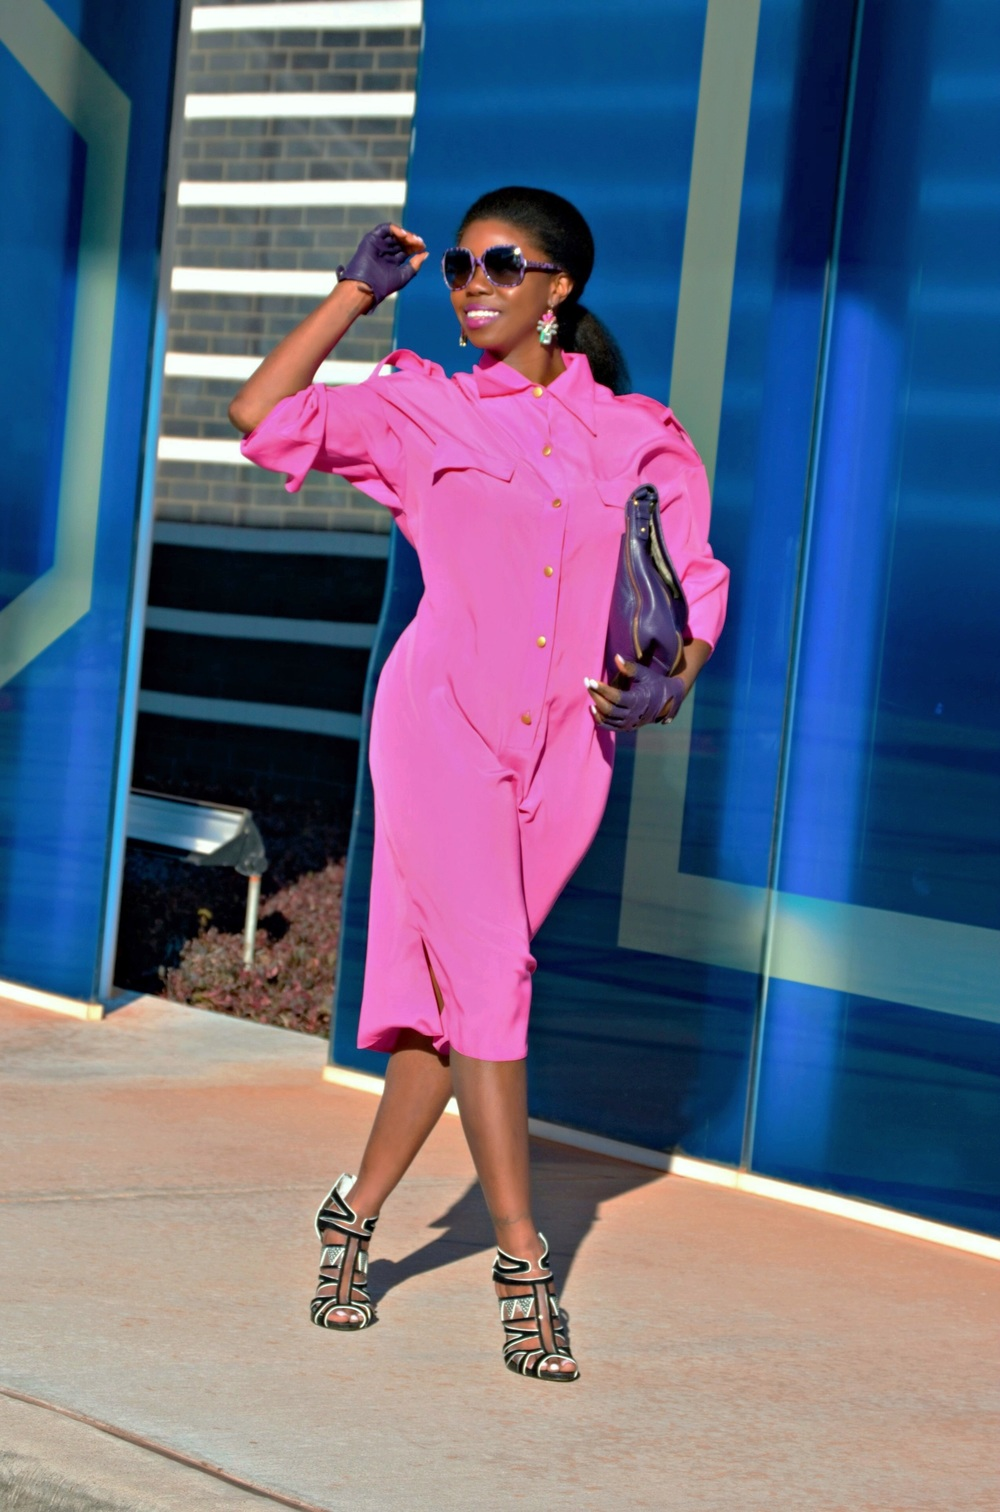 Sunglasses - Dolce & Gabbana (similar  here ) * Shirt Dress -thrifted (similar  here ) * Hot pink blazer - NIC + ZOE (similar  here )  * Earrings - Betsey Johnson (similar  here ) * Cross body bag - Badgley Mischka (seen  here ) * Shoes - Sam Edelman (seen  here ) * Leather finger-less gloves (similar  here)  .